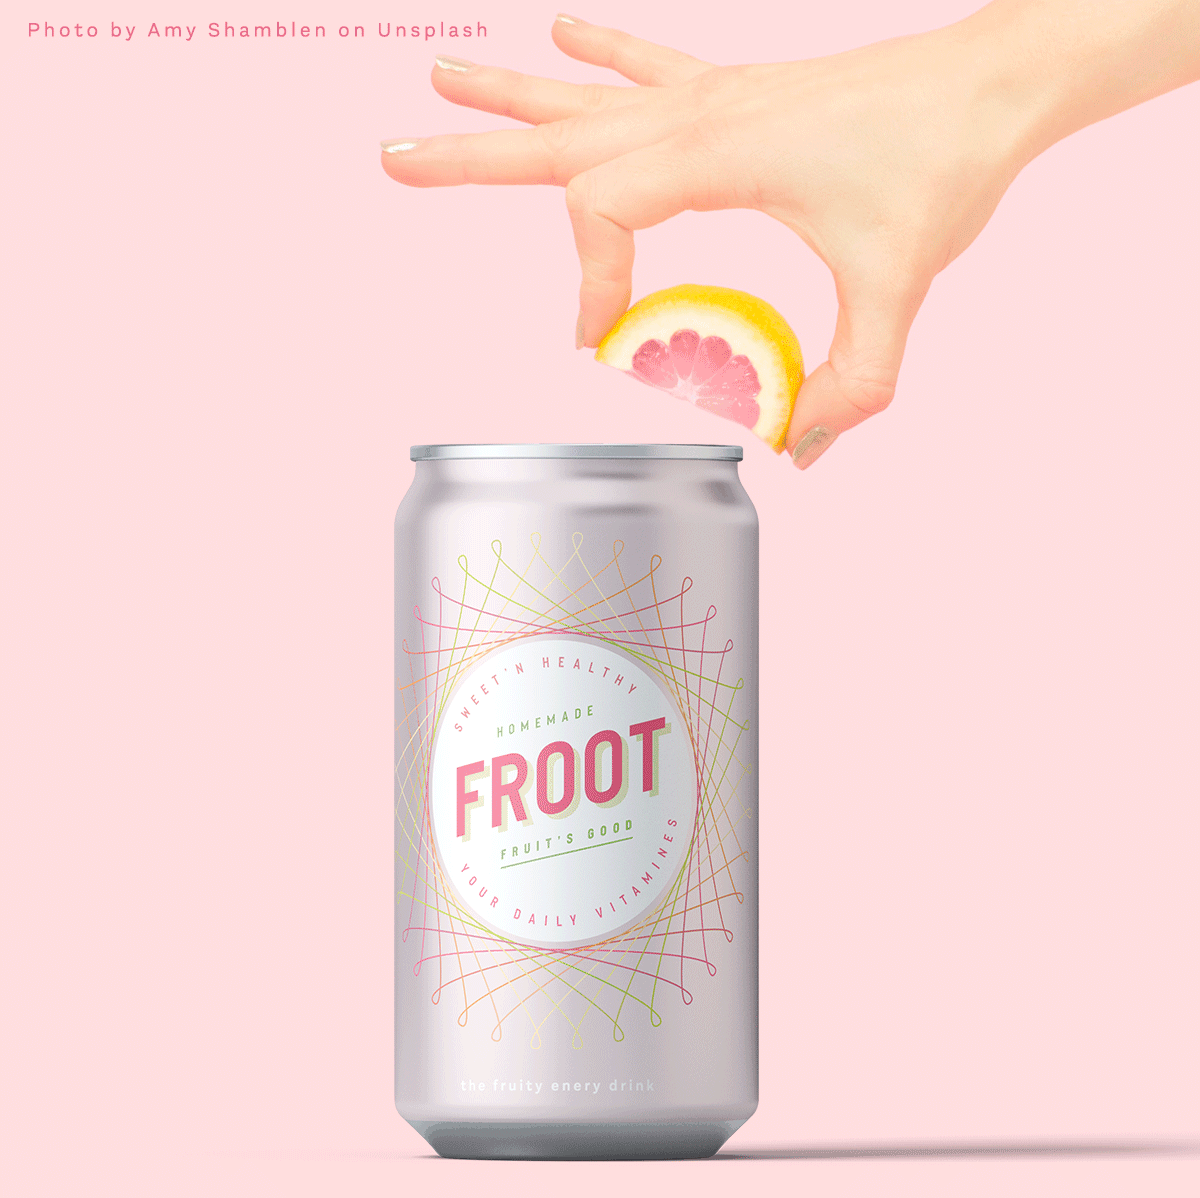 Froot, a fictional fruit energy drink